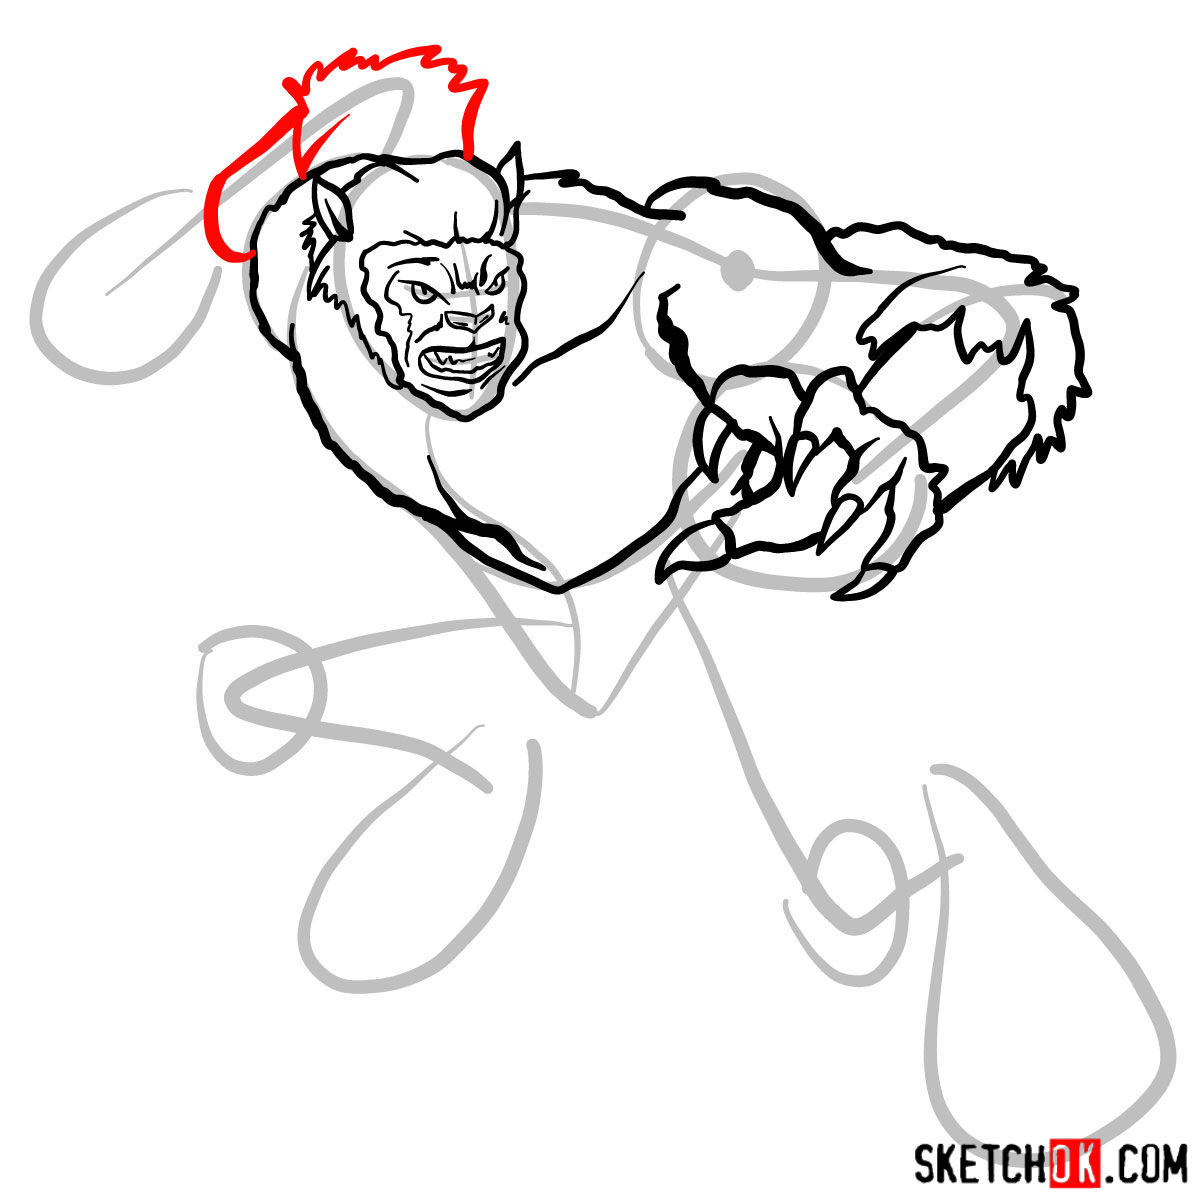 How to draw Beast (X-Men mutant) - step 09